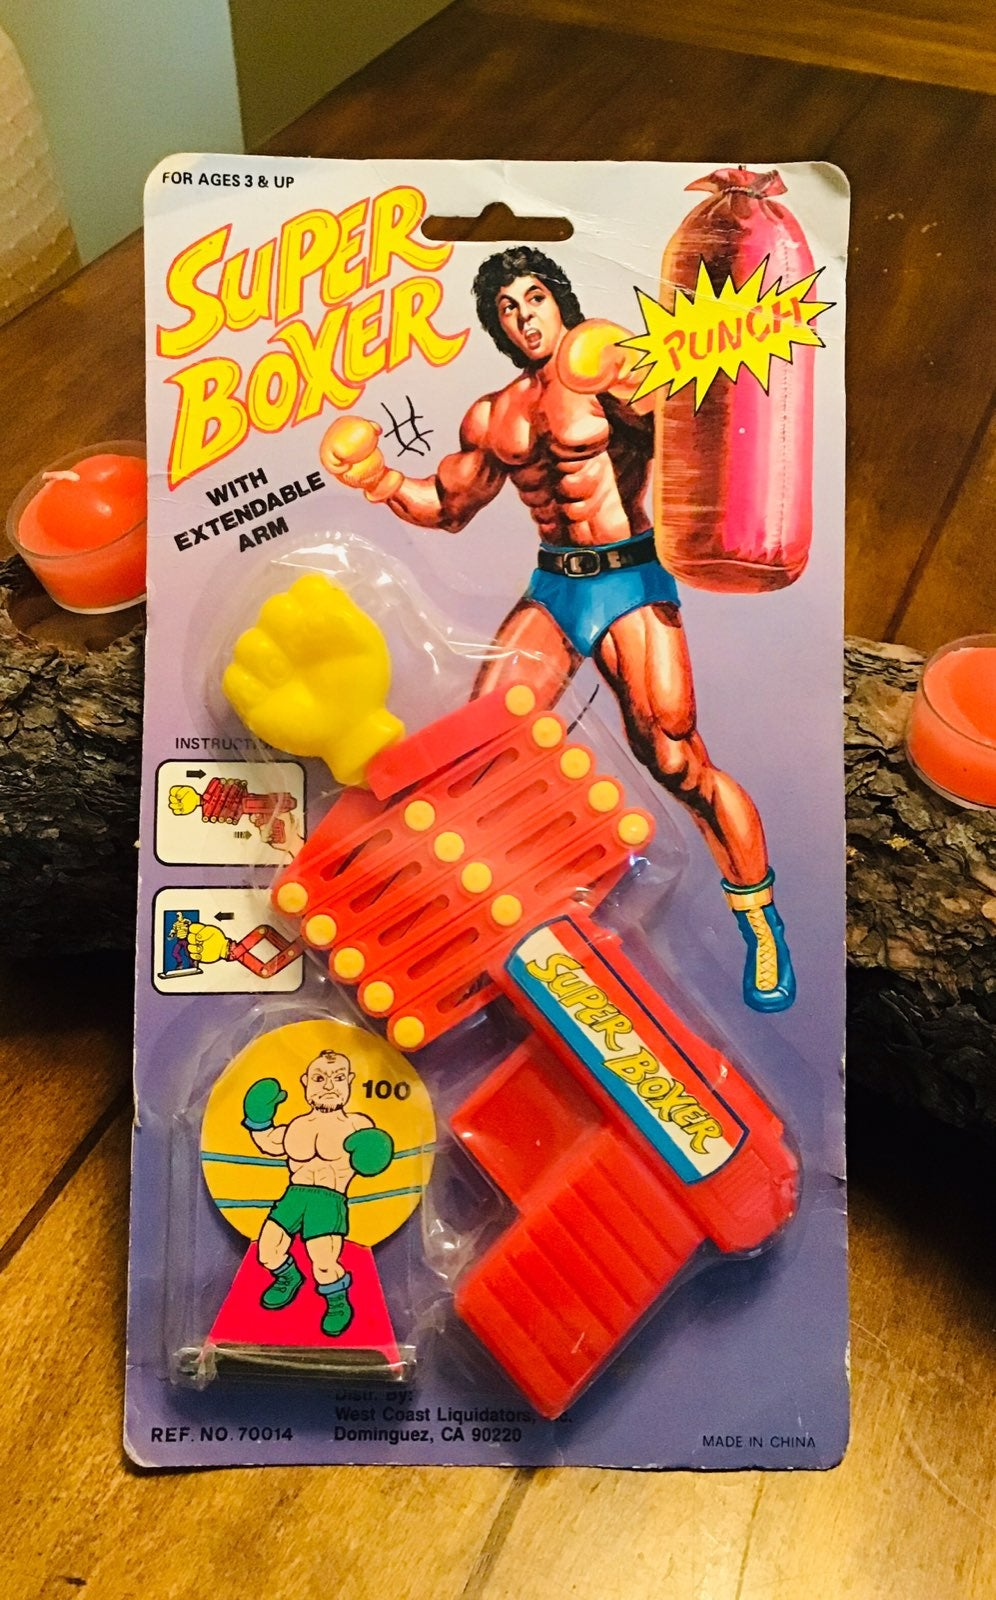 NEW 1980s Super Boxer With Extendable Ar